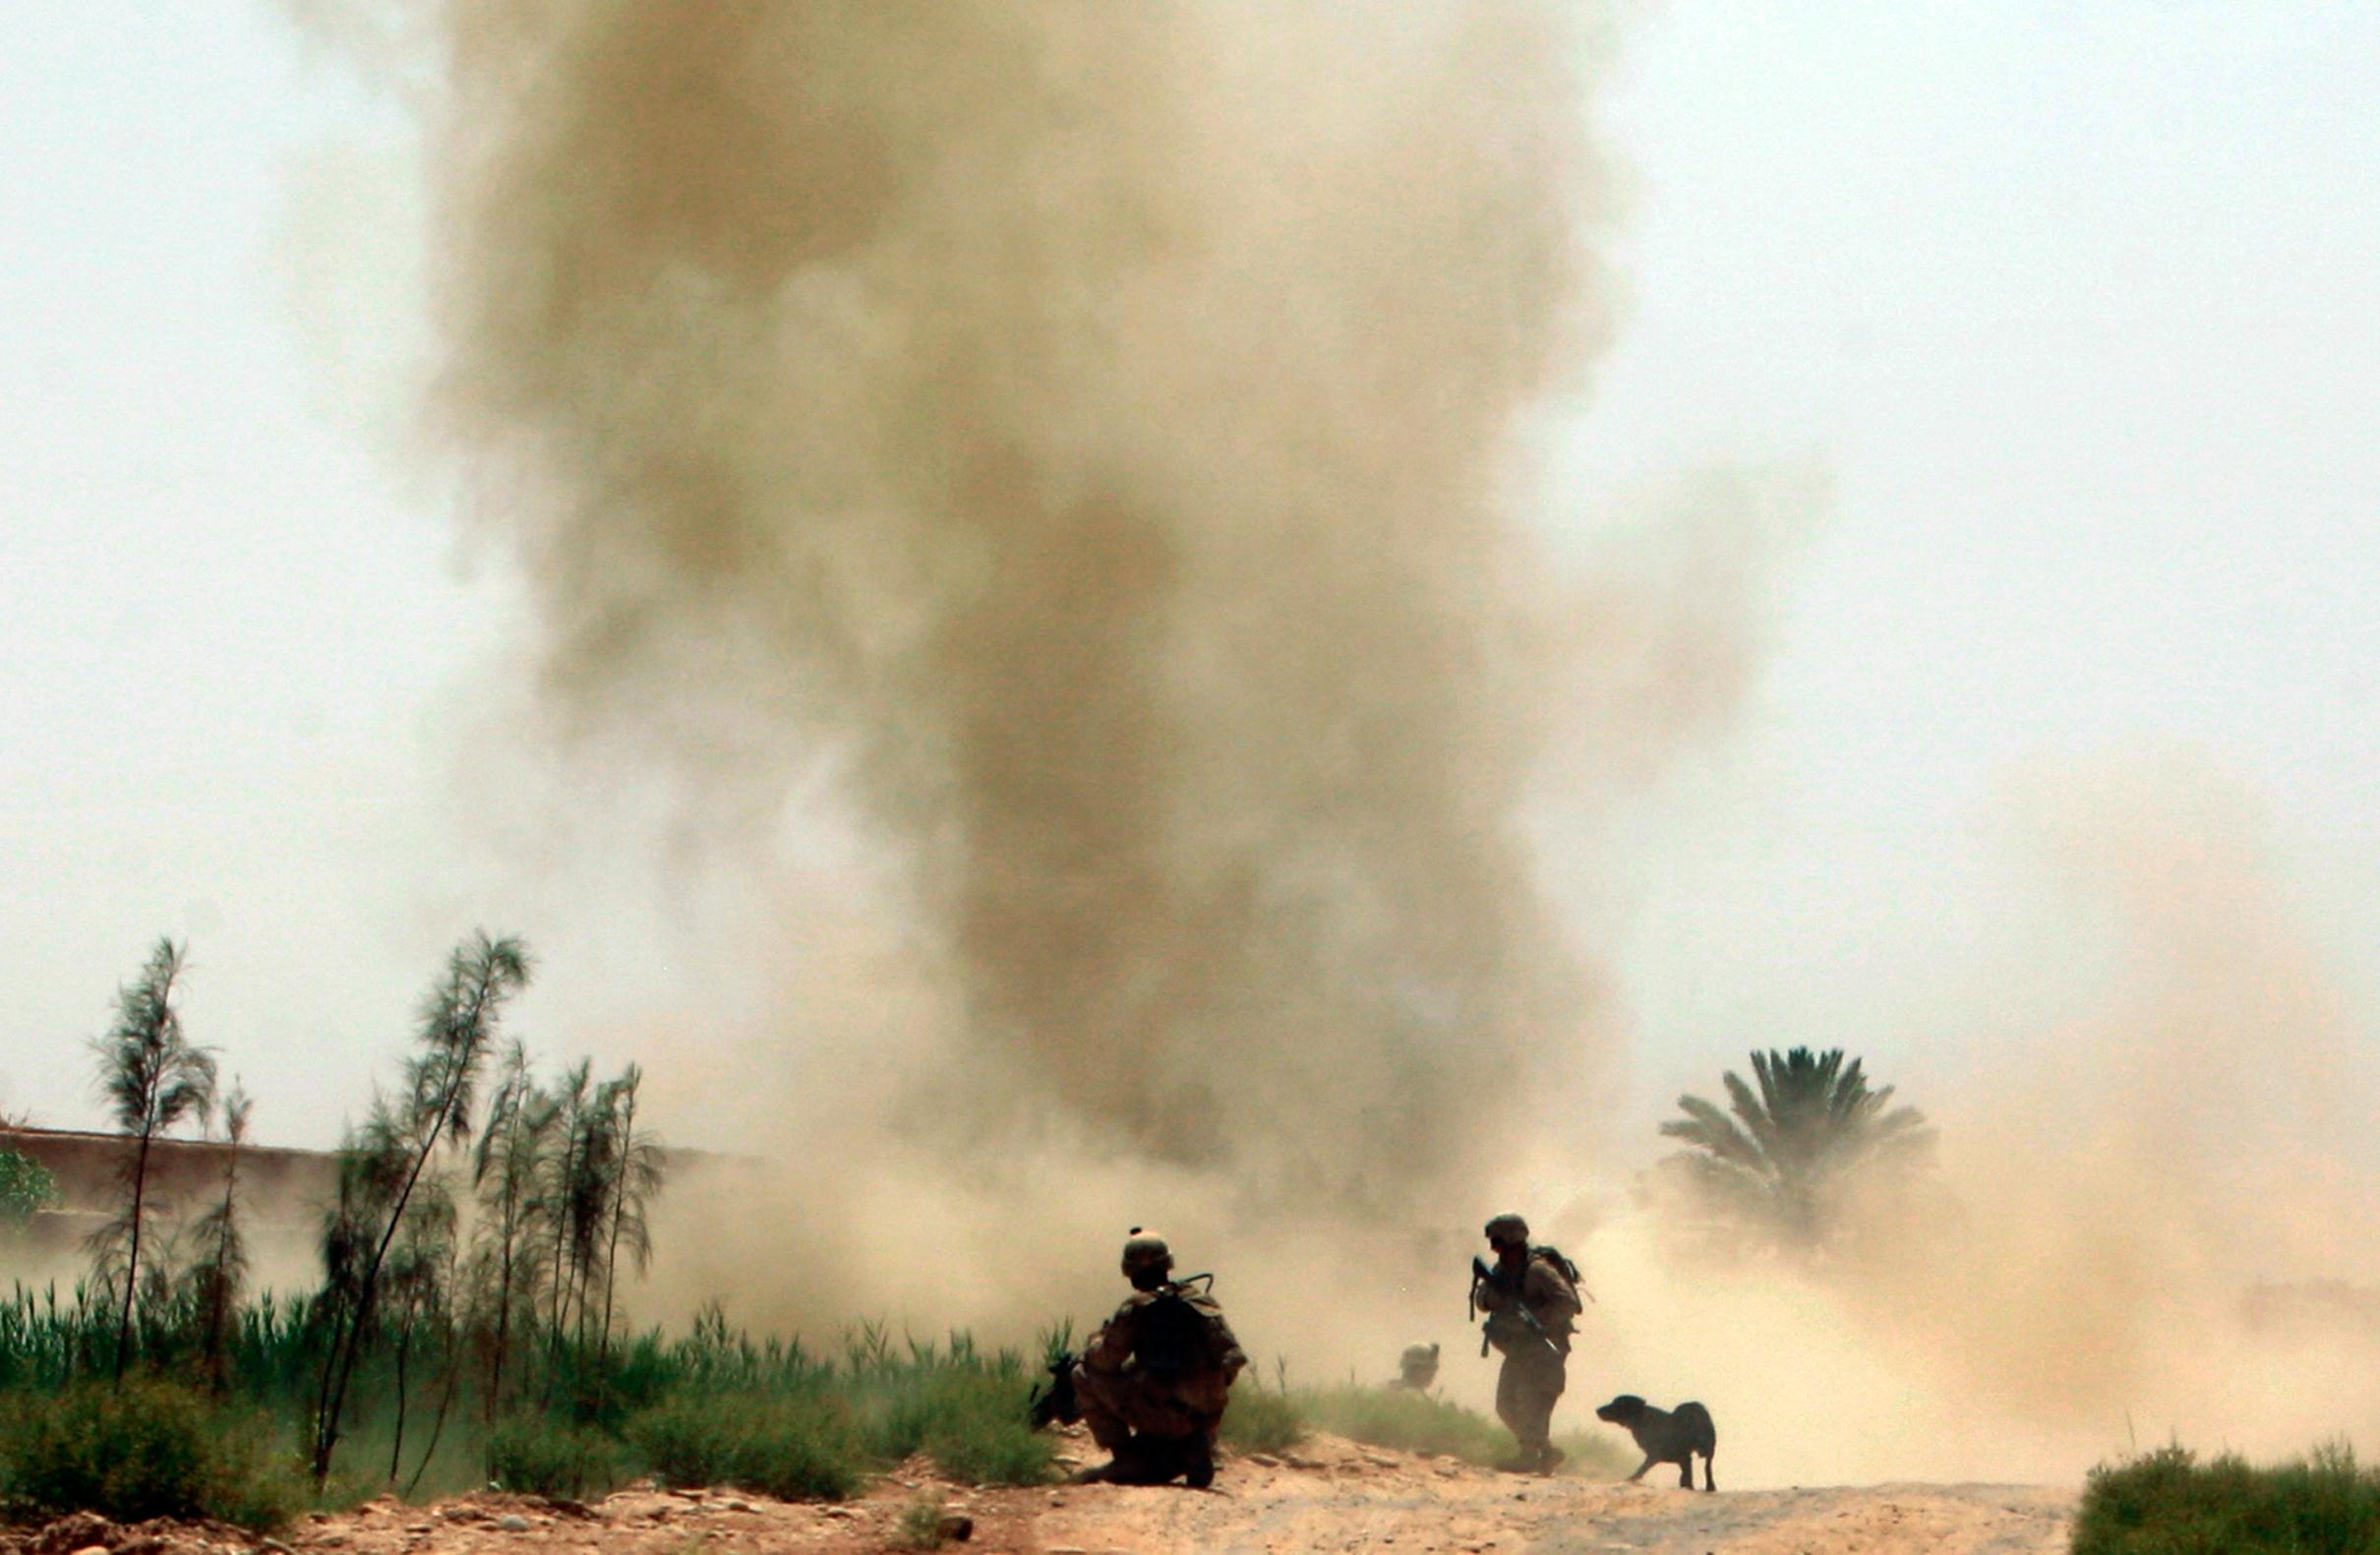 Image: U.S. Marines from 3rd Battalion, 6th Marines look on as an IED explodes while they are on a patrol in Marjah district